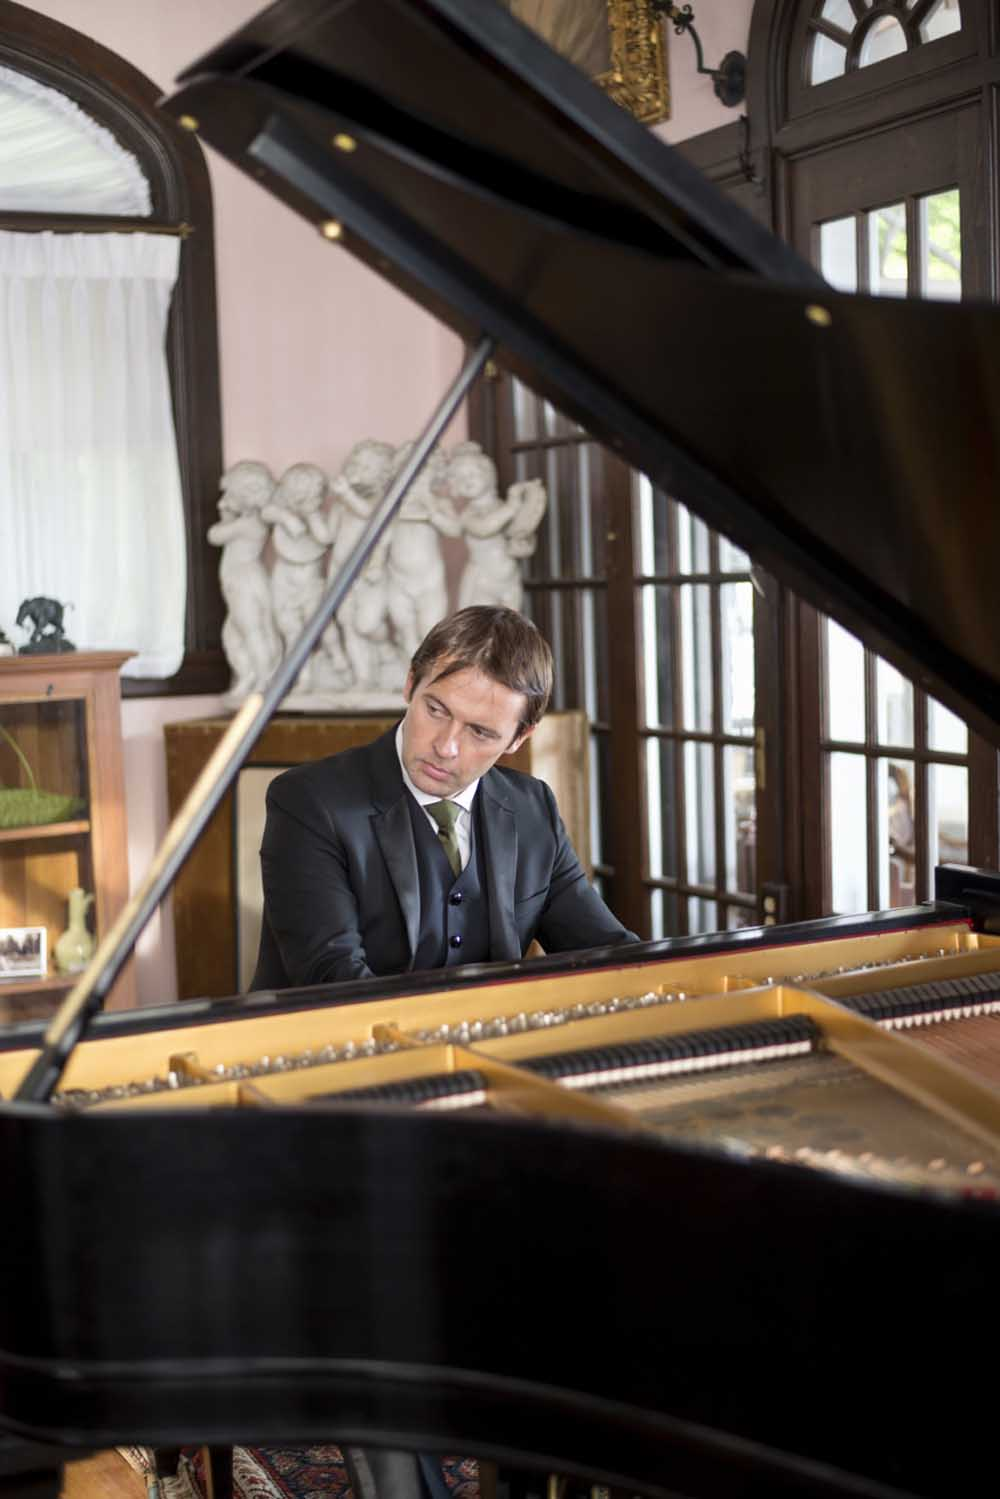 man in suit playing grand piano